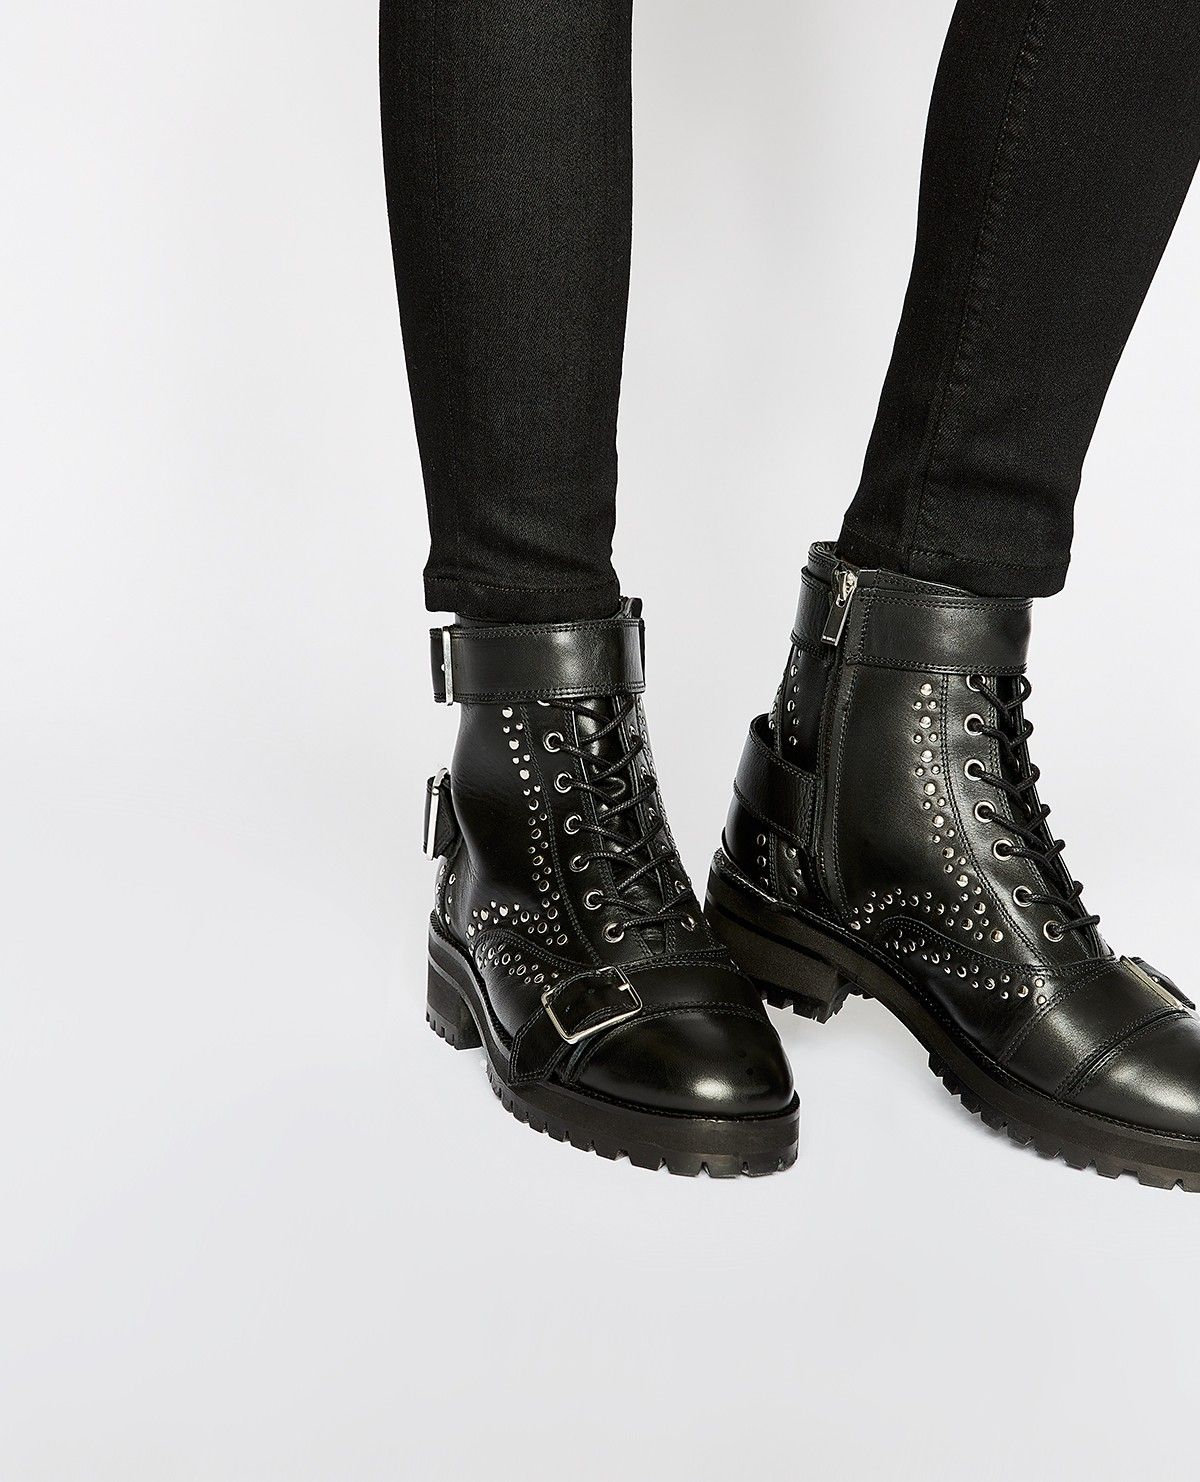 Black leather lace-up studded ankle